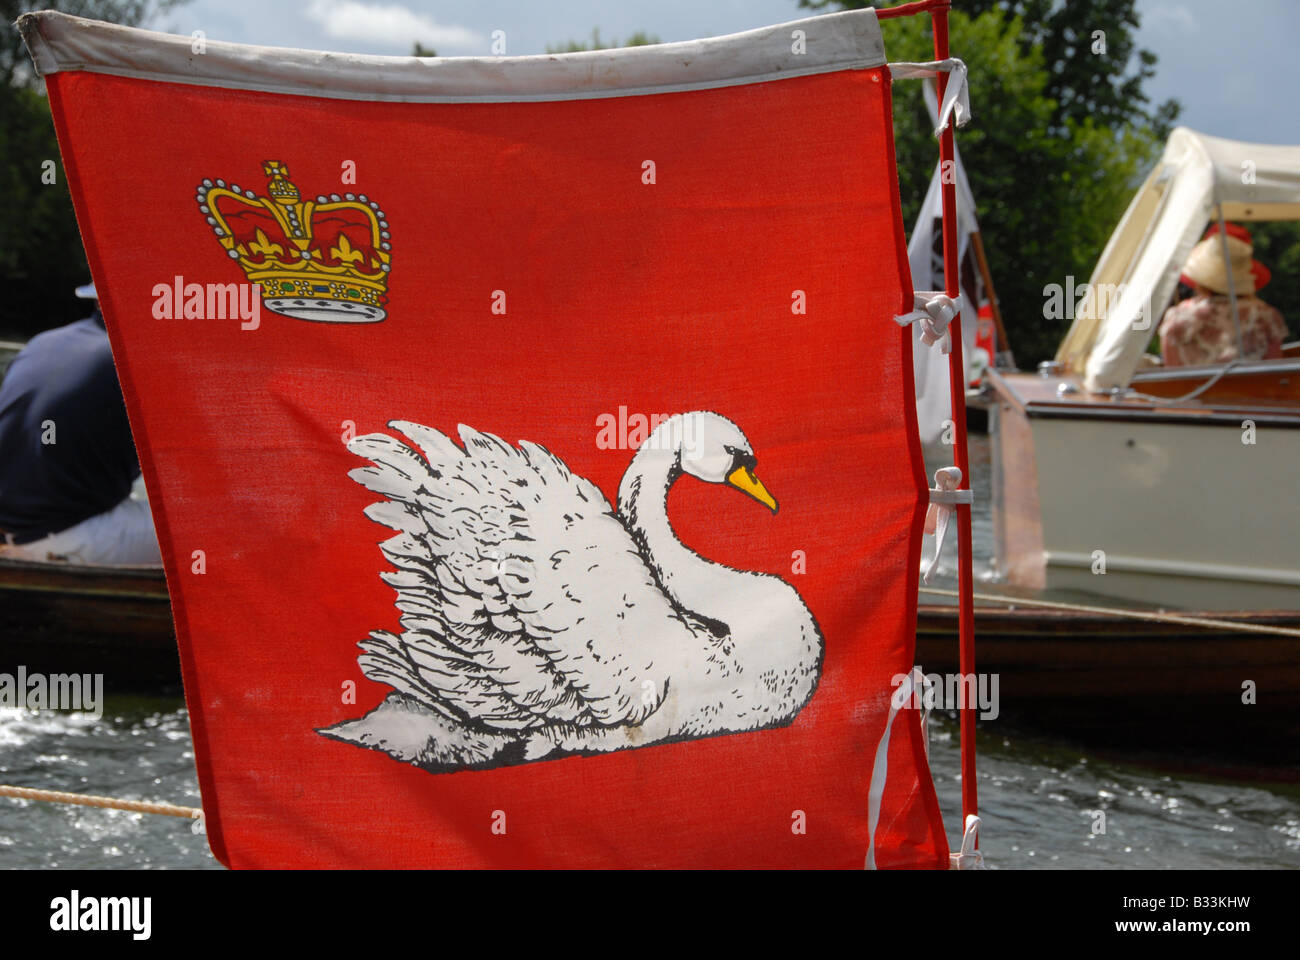 The flag attached to the Queen Marker's skiff flown during the Swan Upping on the River Thames - Stock Image